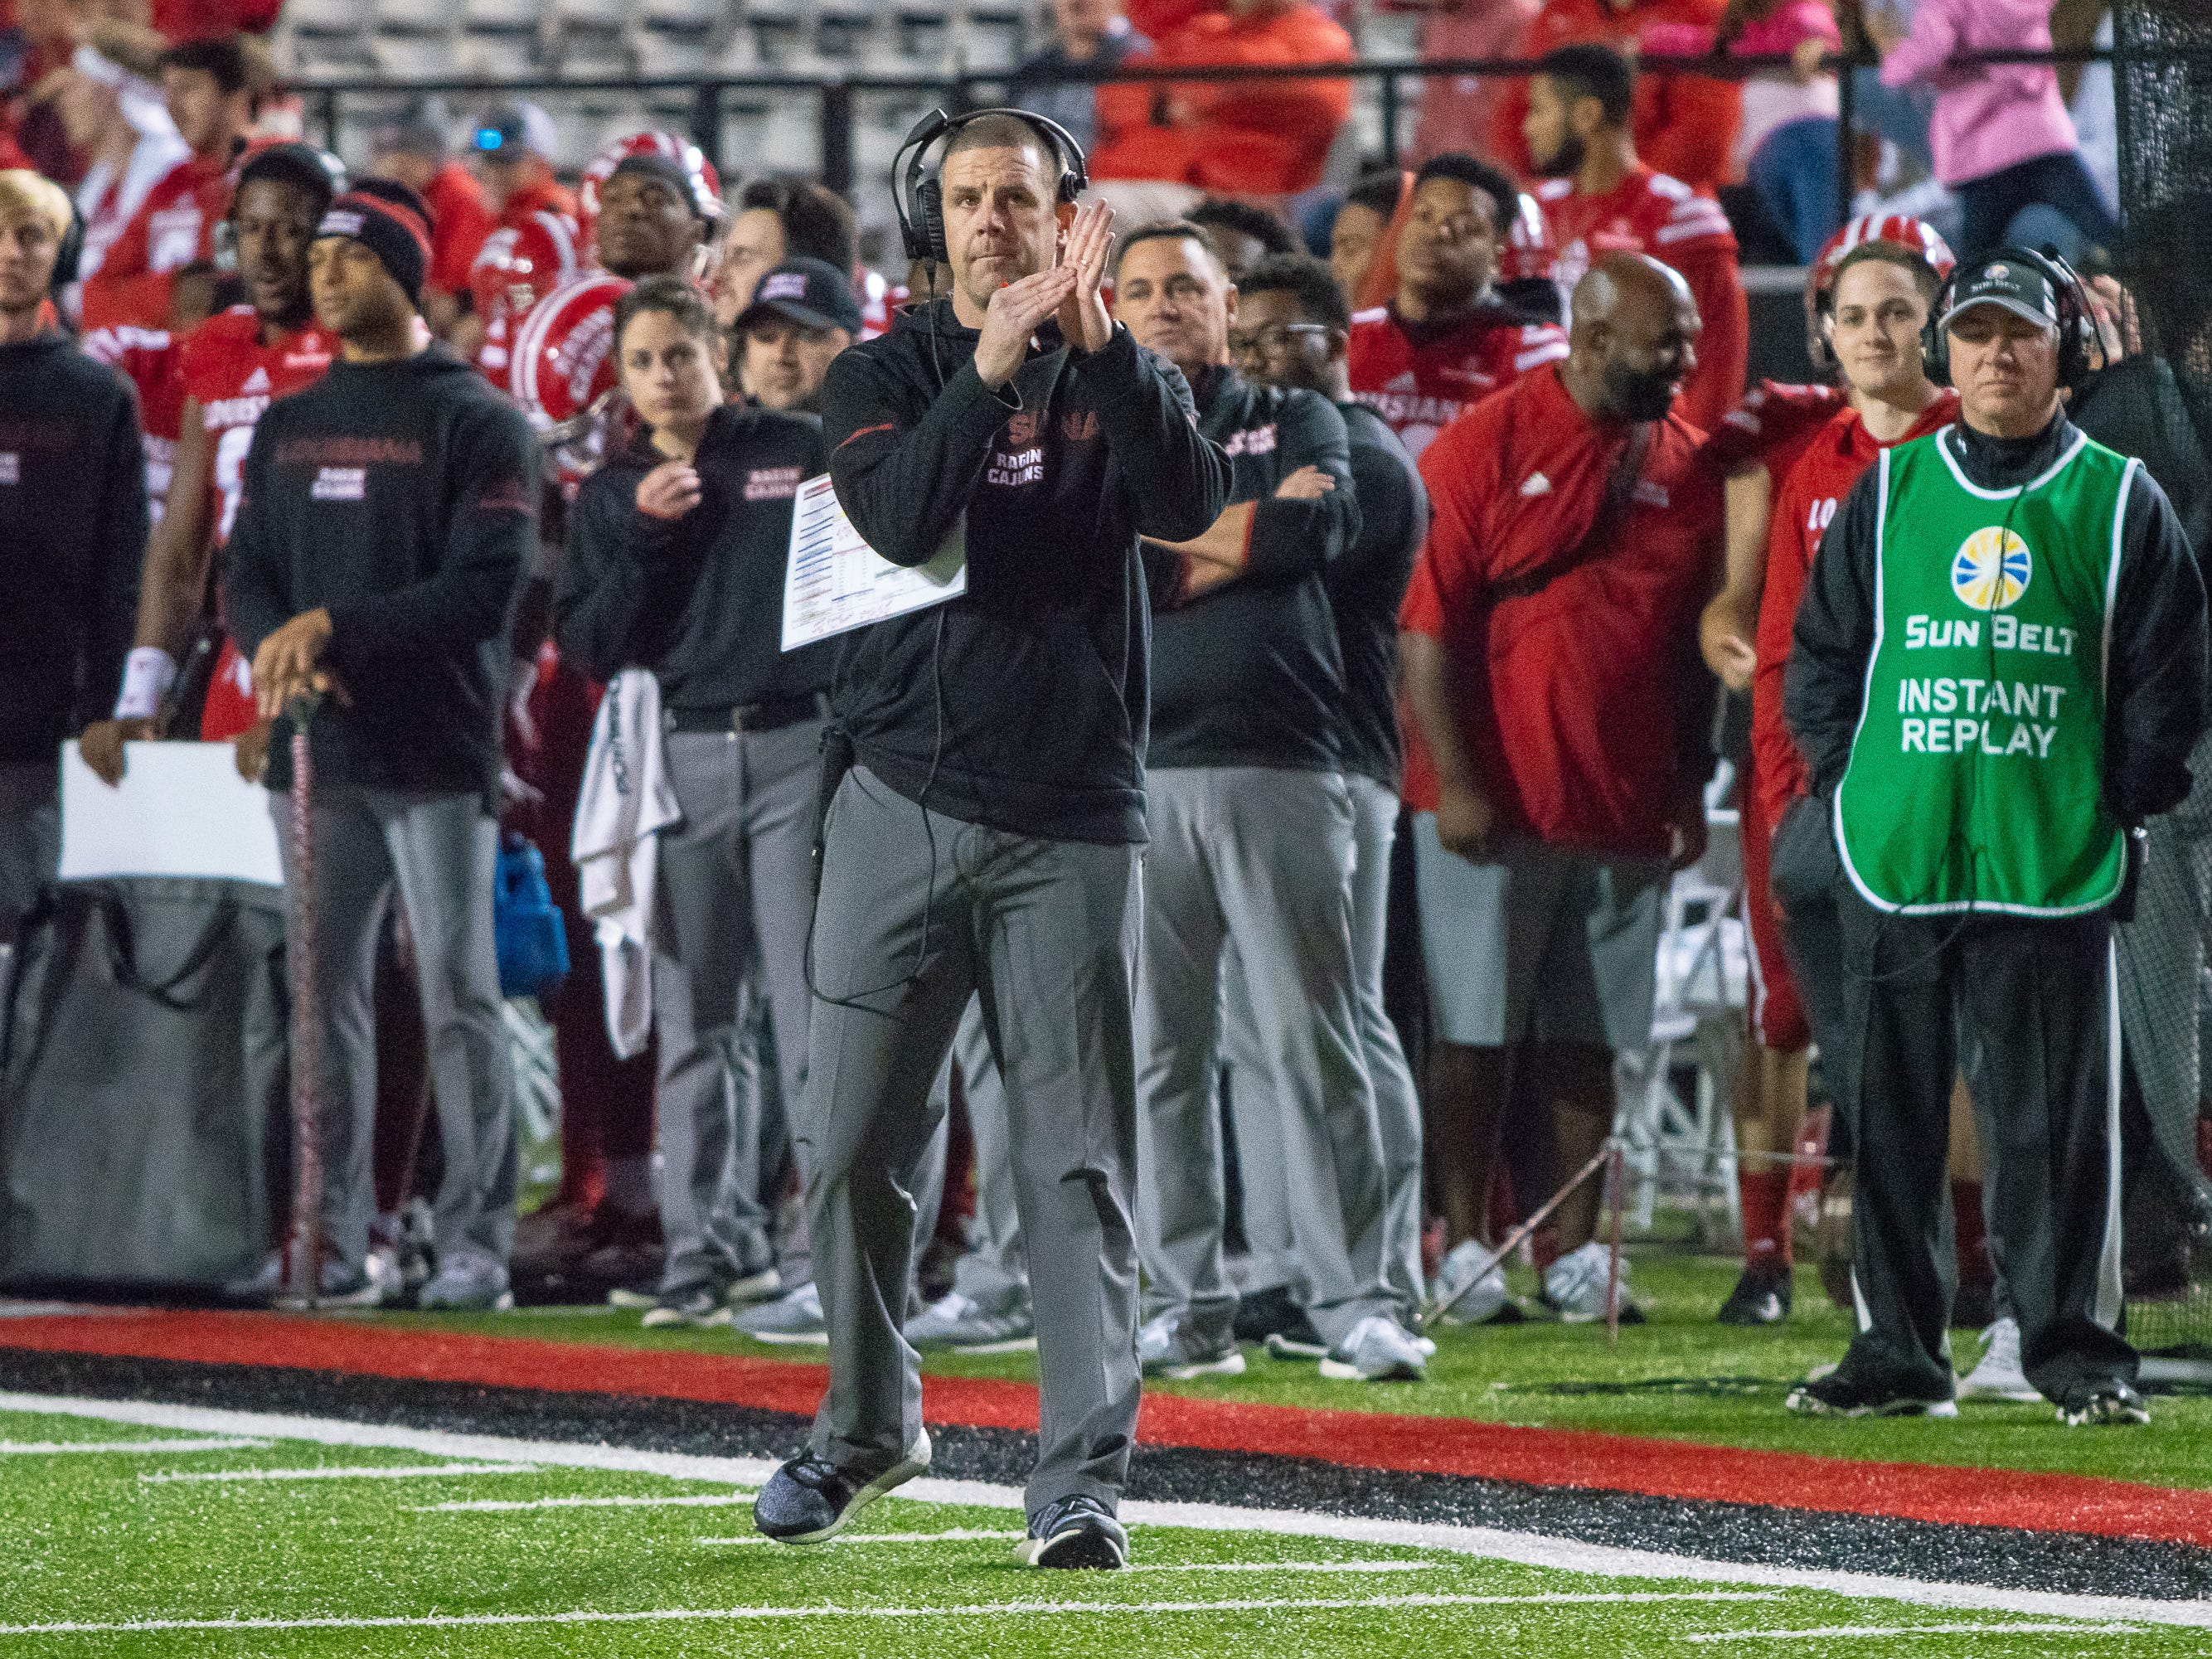 UL's head football coach Billy Napier calls for a timeout in the fourth quarter as the Ragin' Cajuns play against the South Alabama Jaguars at Cajun Field on November 17, 2018.